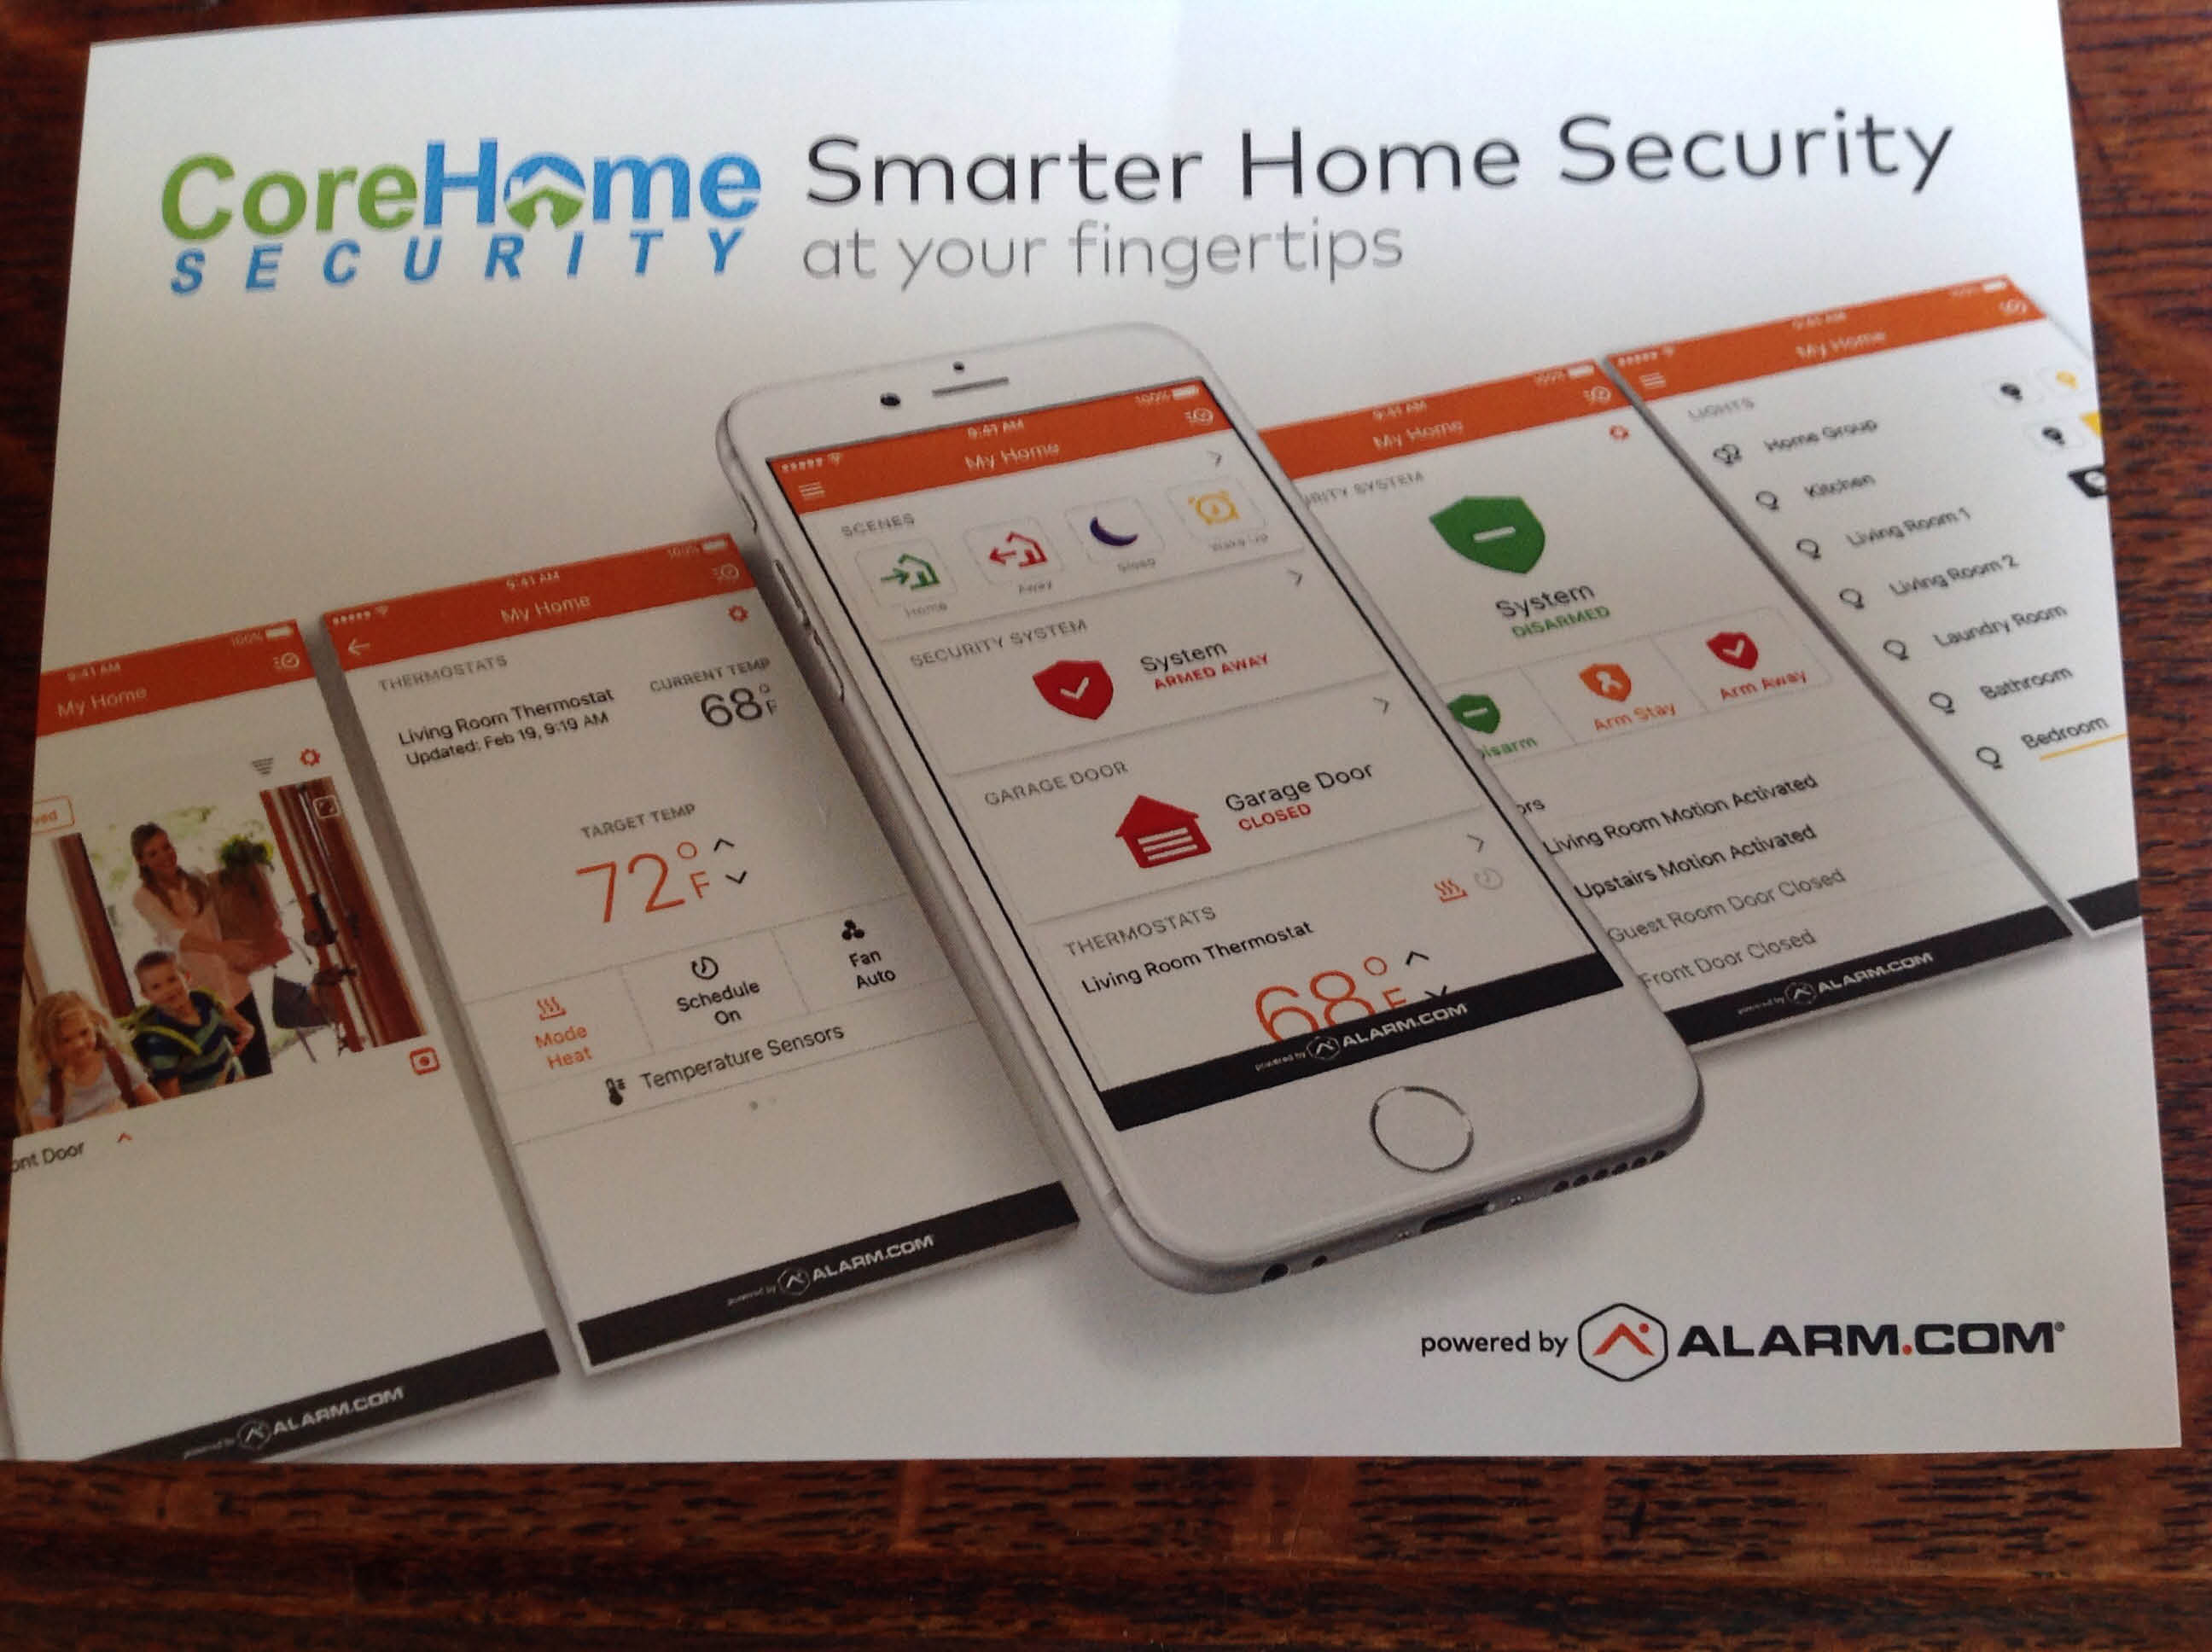 Smart home security using a smartphone